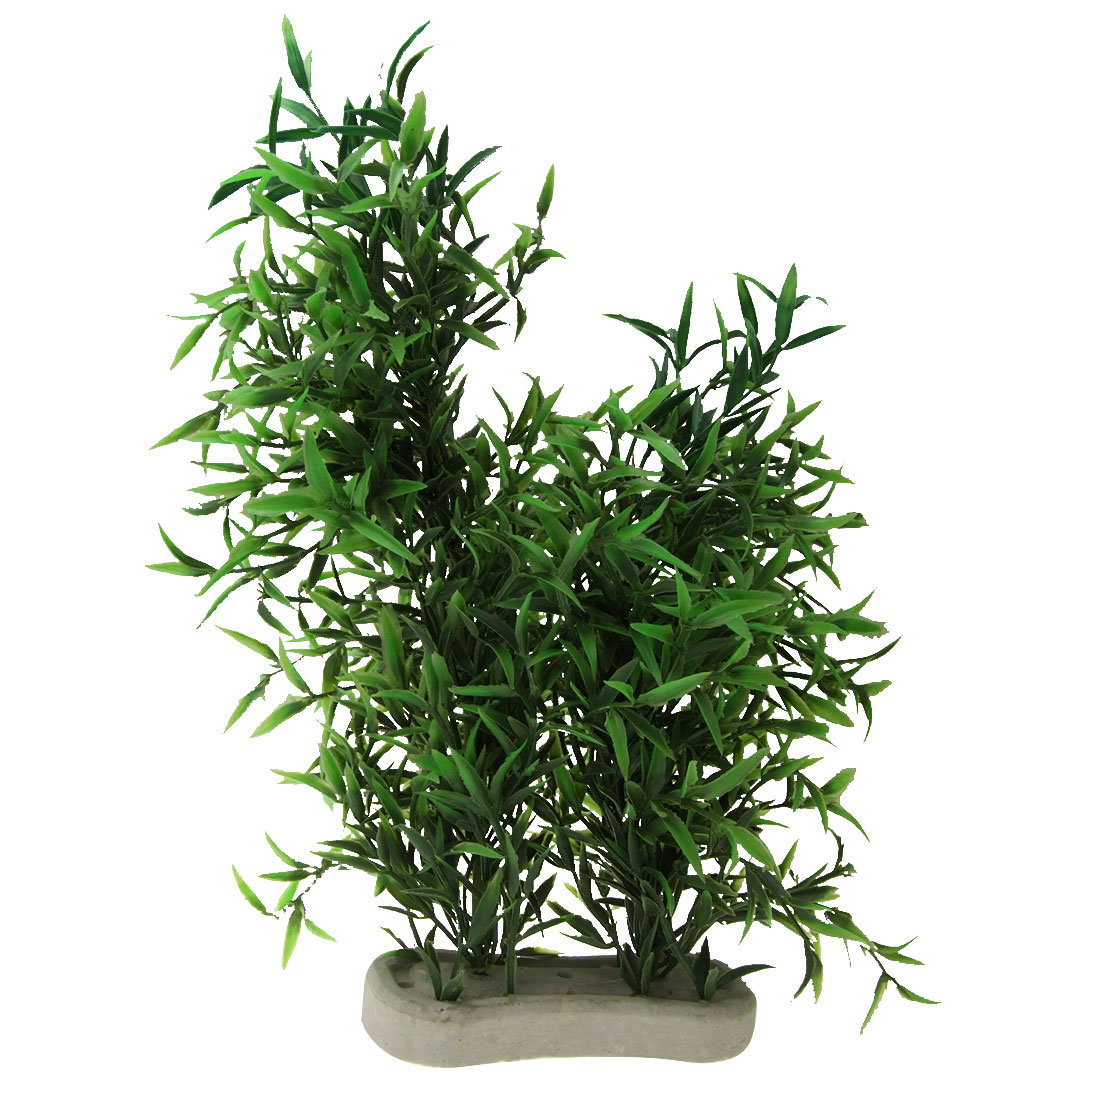 Plastic Plants Ornament for Aquarium Decor Fish Tank Green Grass